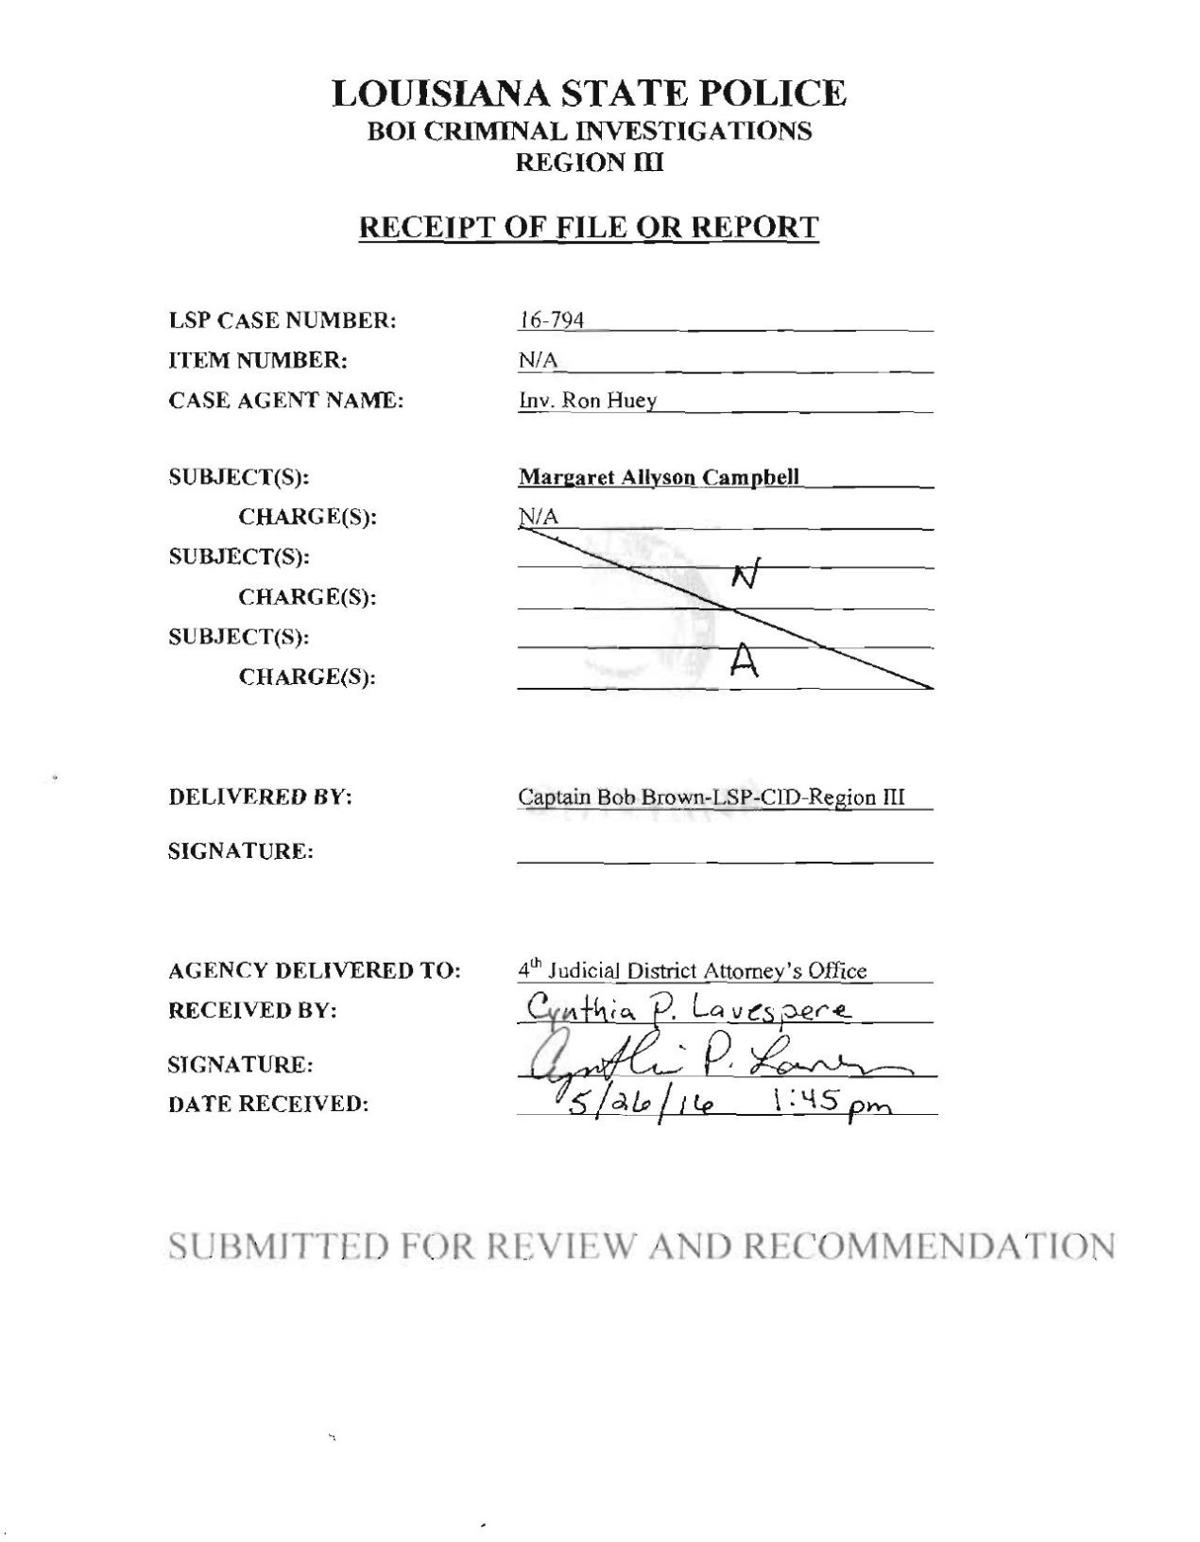 Louisiana State Police report on investigation of Allyson Campbell_file produced and redacted by AG Jeff Landry.pdf